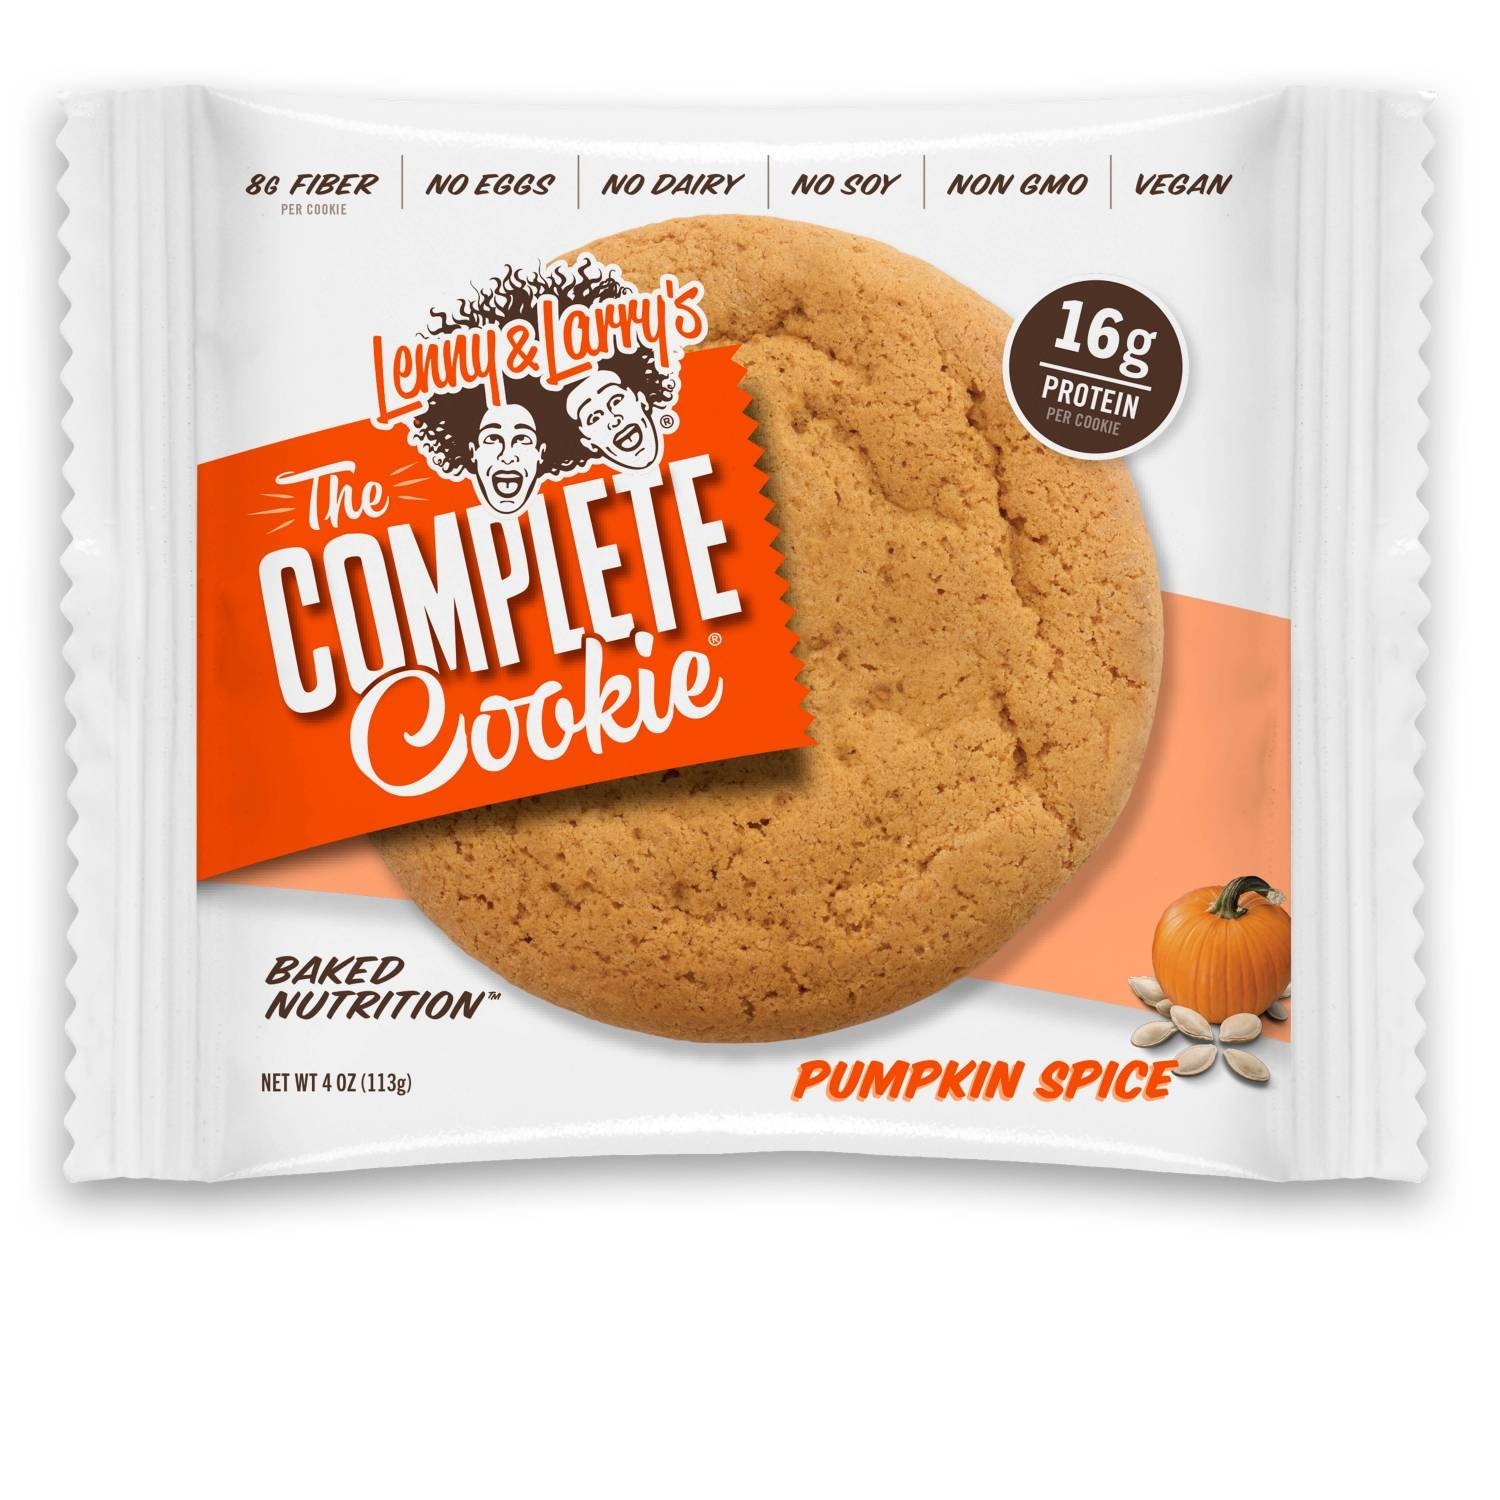 Lenny & Larry's The Complete Cookie, Pumpkin Spice, Soft Baked,  16g Plant Protein, Vegan,  4-Ounce Cookies (Pack of 12)